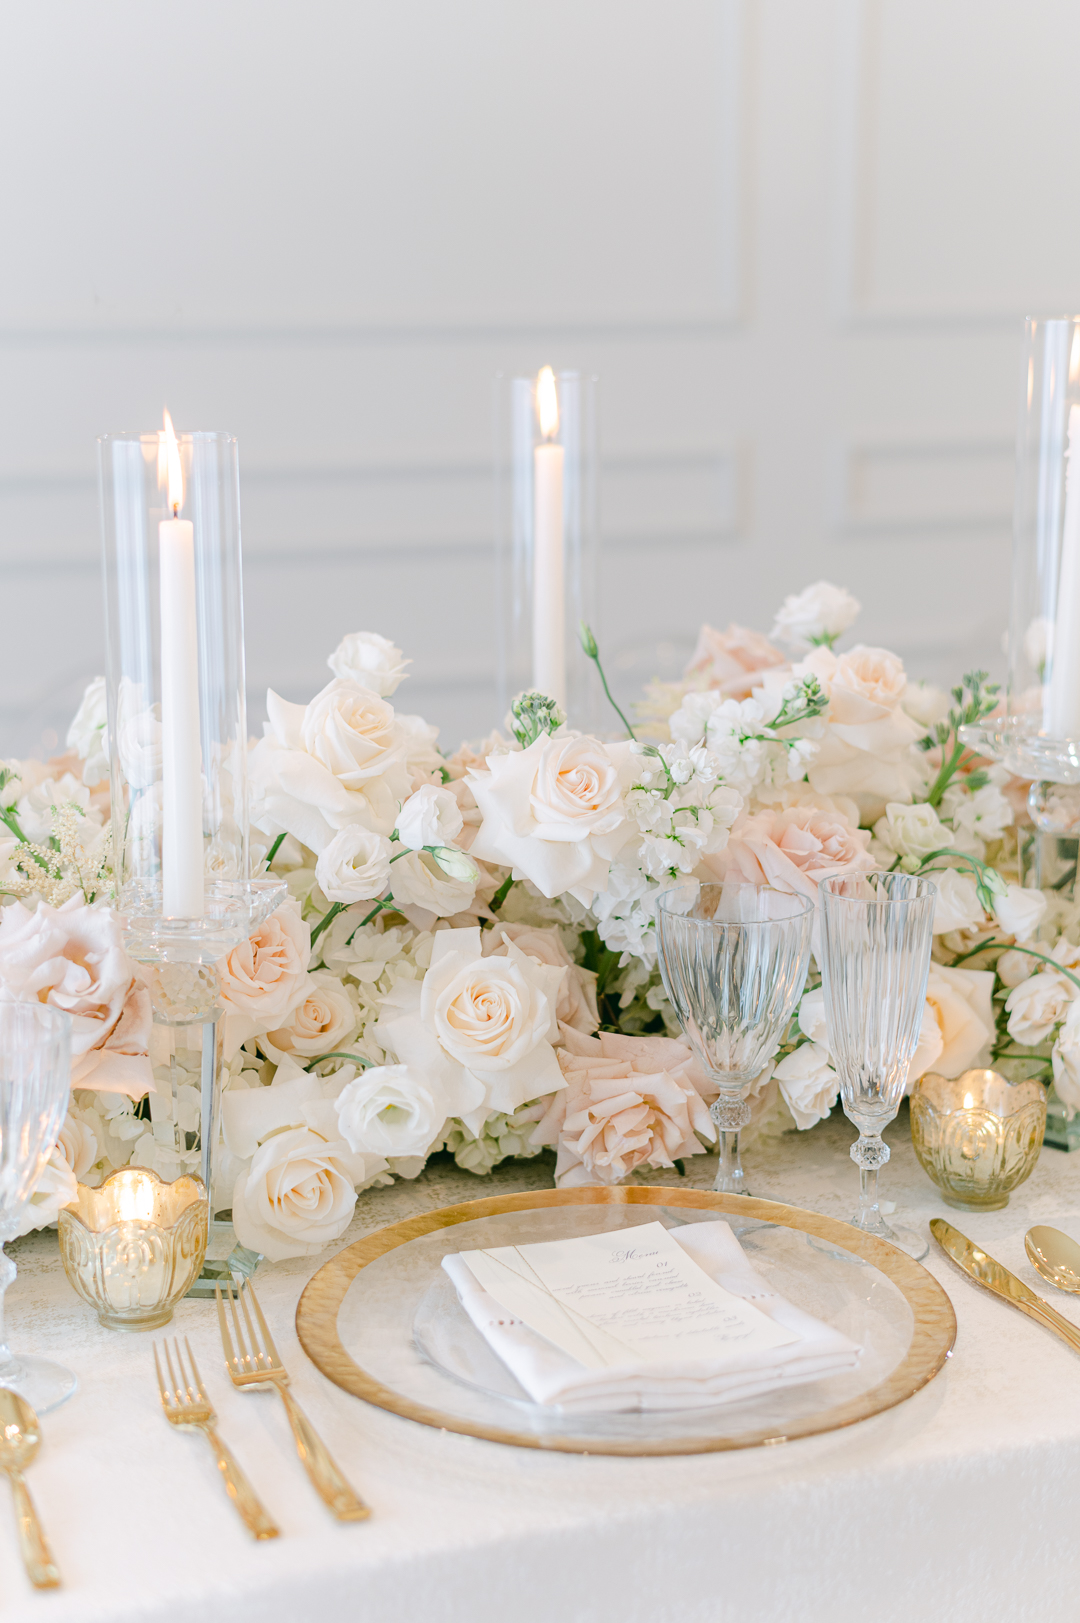 White, pink & gold wedding decor. Perfect soft and elegant combination for a center piece.